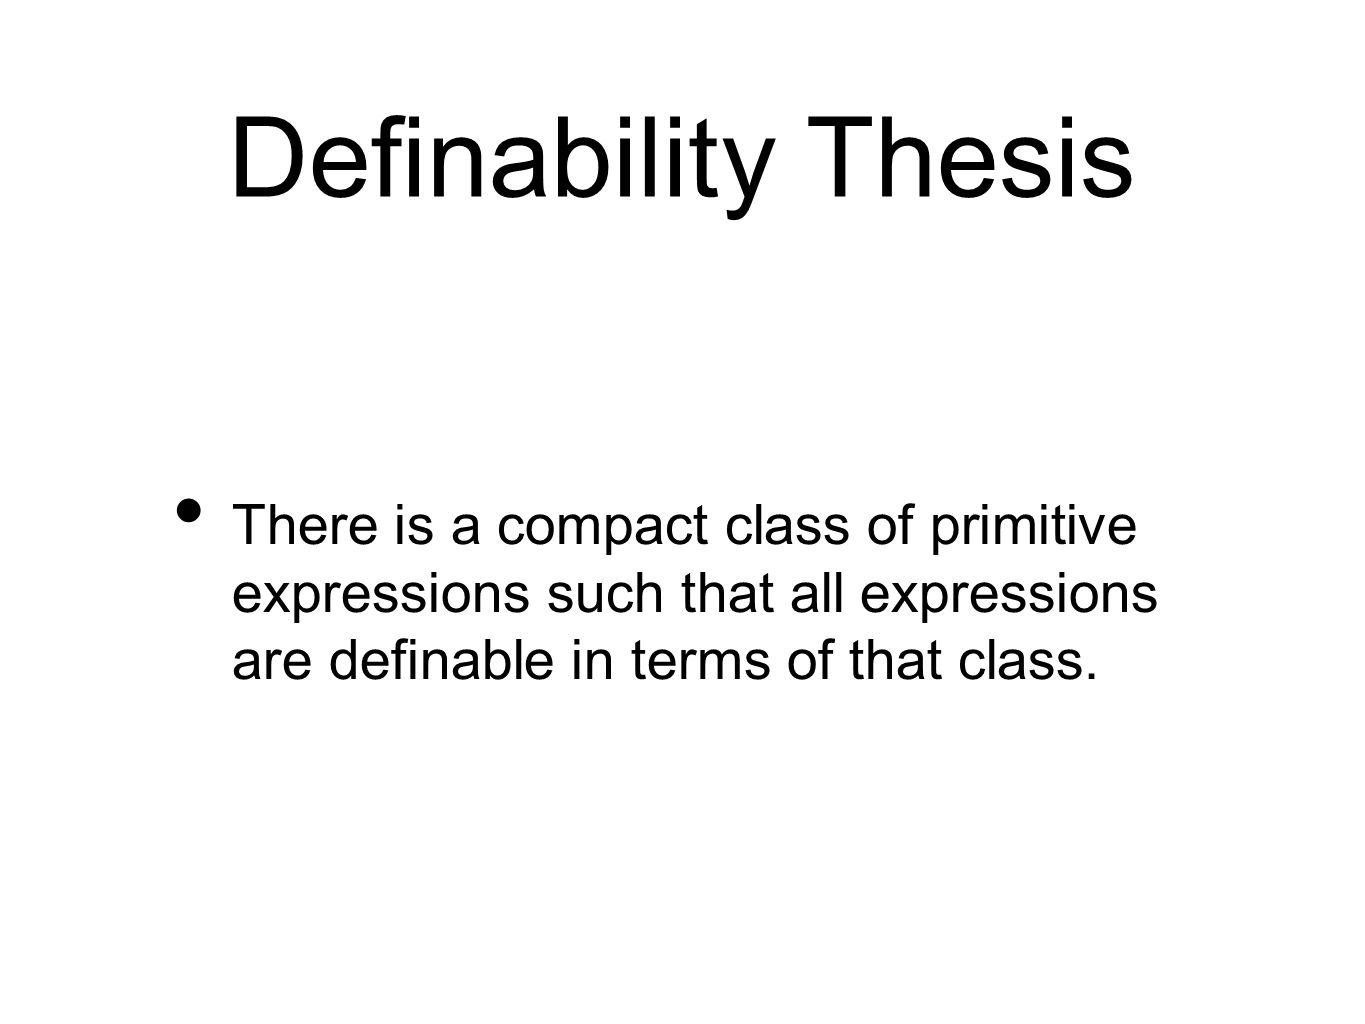 Definability Thesis There is a compact class of primitive expressions such that all expressions are definable in terms of that class.